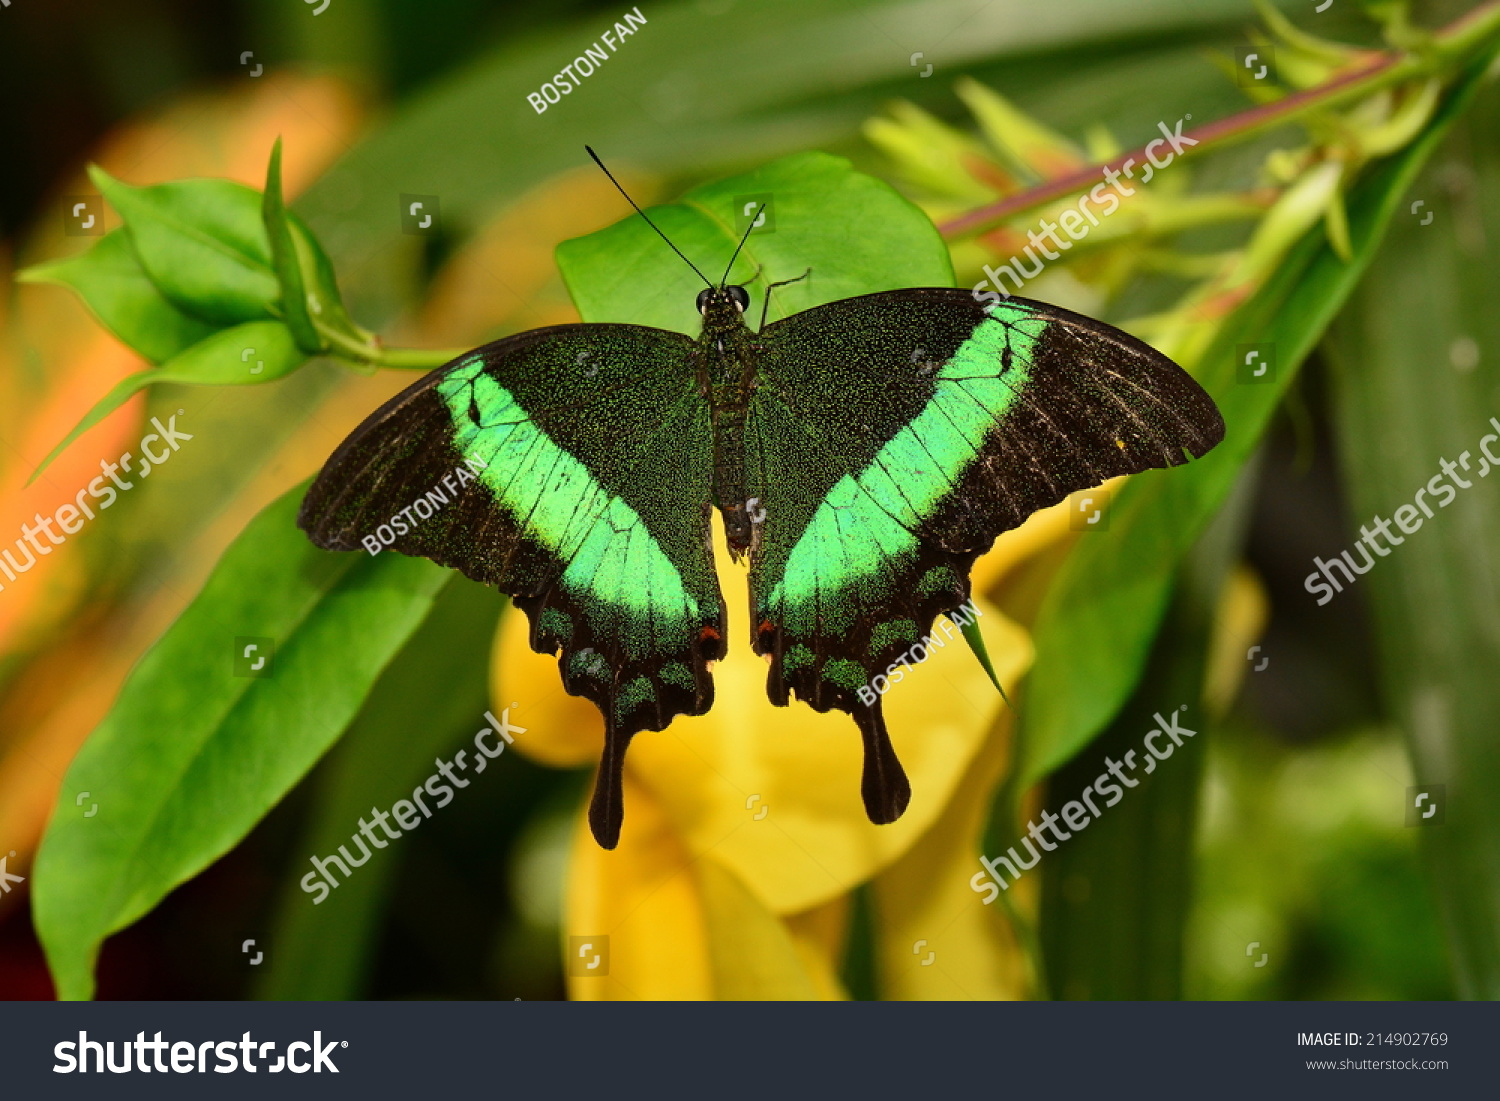 Green peacock butterfly - photo#18